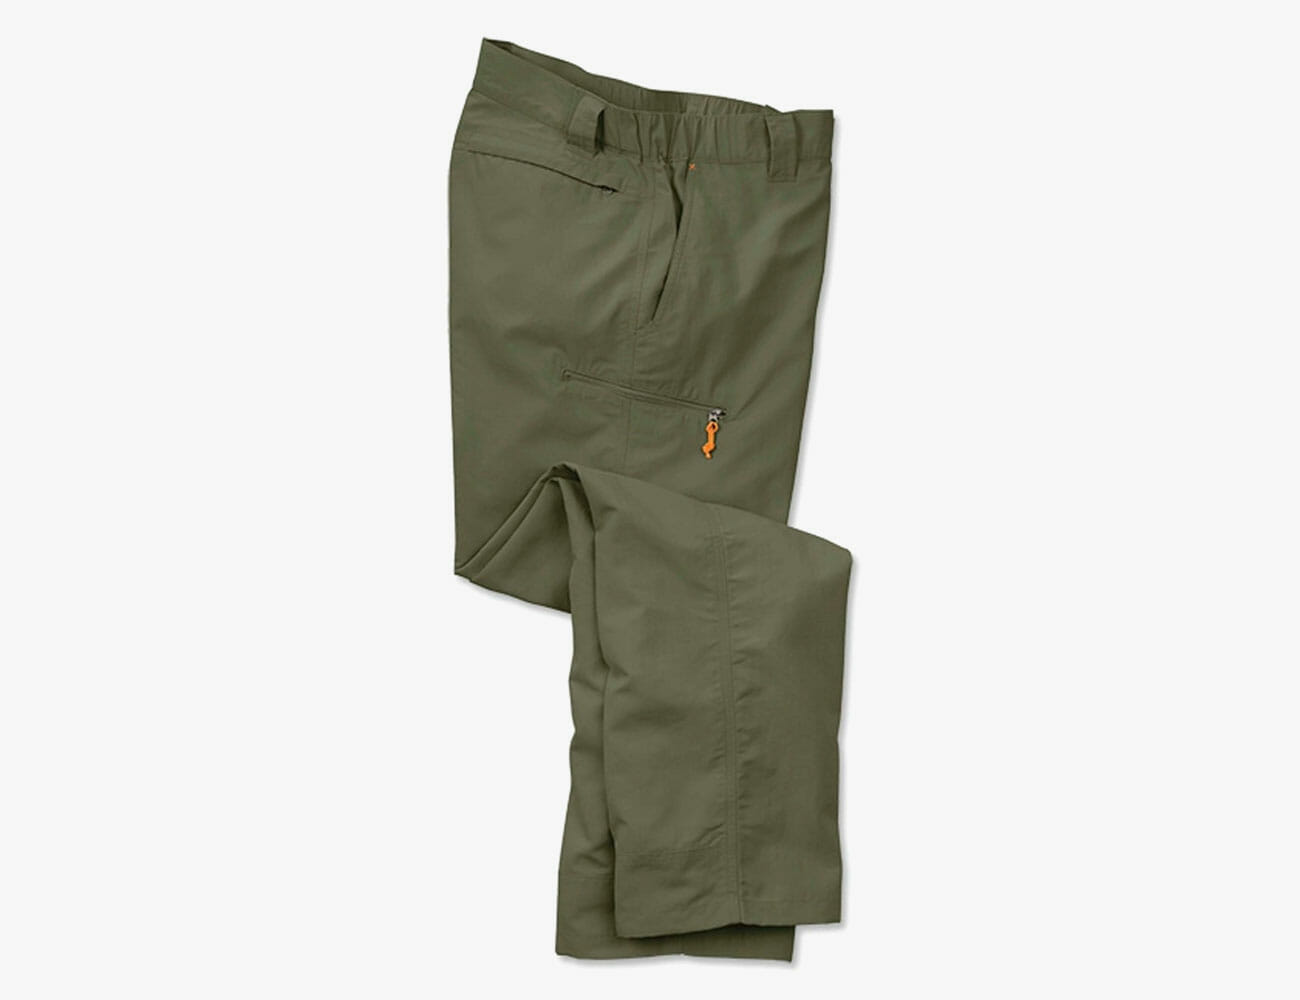 8bb3b7df85ac5 Technical pants can go wrong really quickly. Stick with something  comfortable, lightweight and easy to dry. Zip-off pants are an option if  you want to have ...